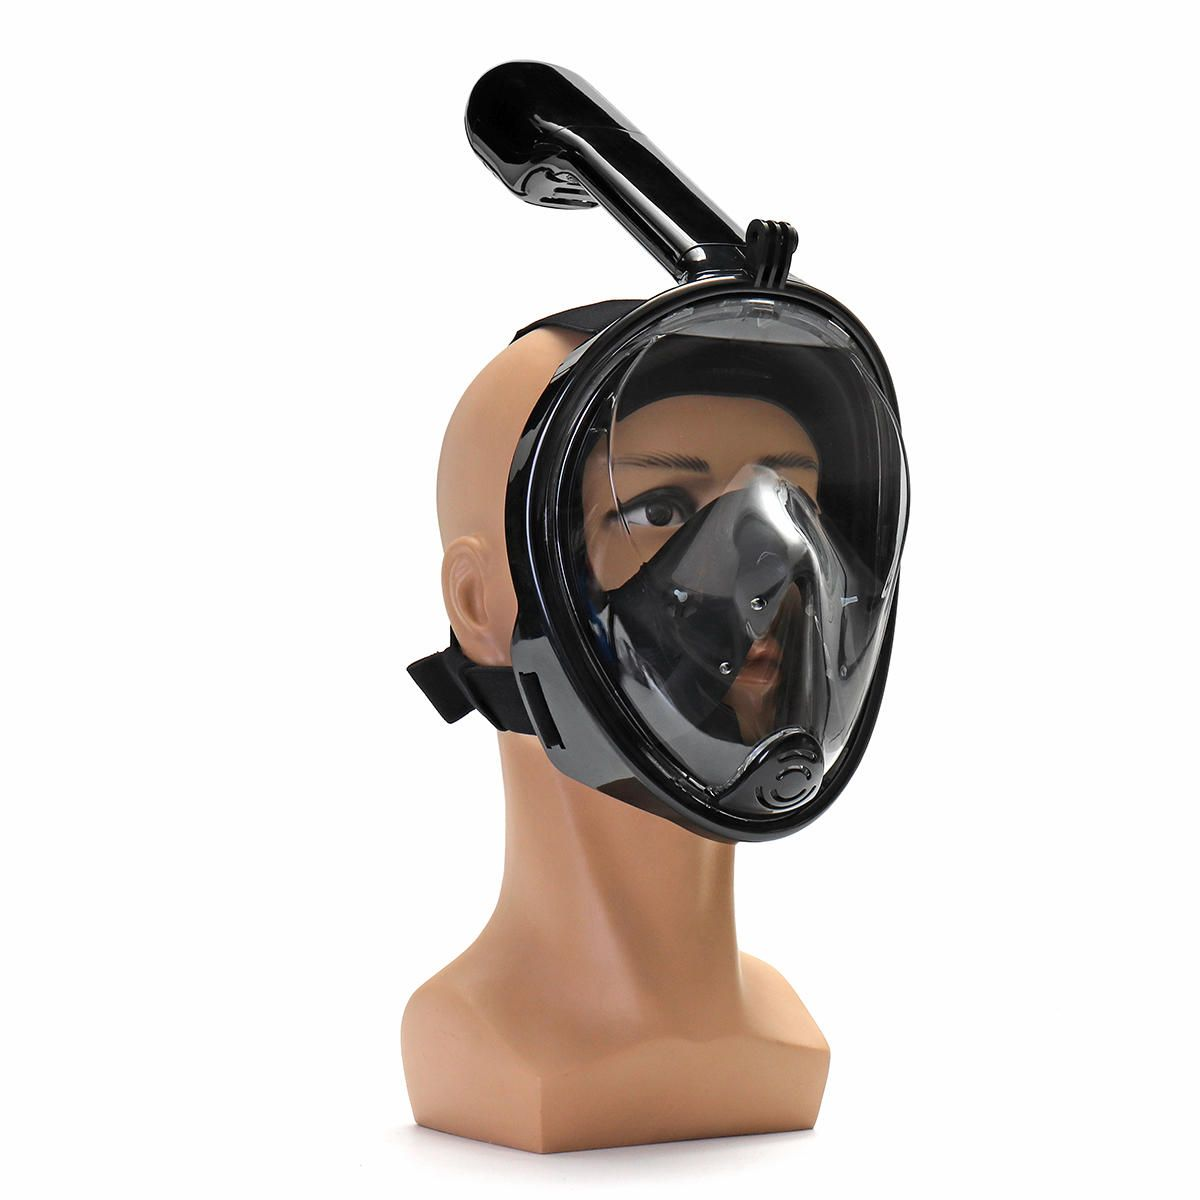 180° Viewing Area Full Dry Snorkeling Mask 185x150x188mm Fog Resistant Adjustment Diving Mask with a Camera Base